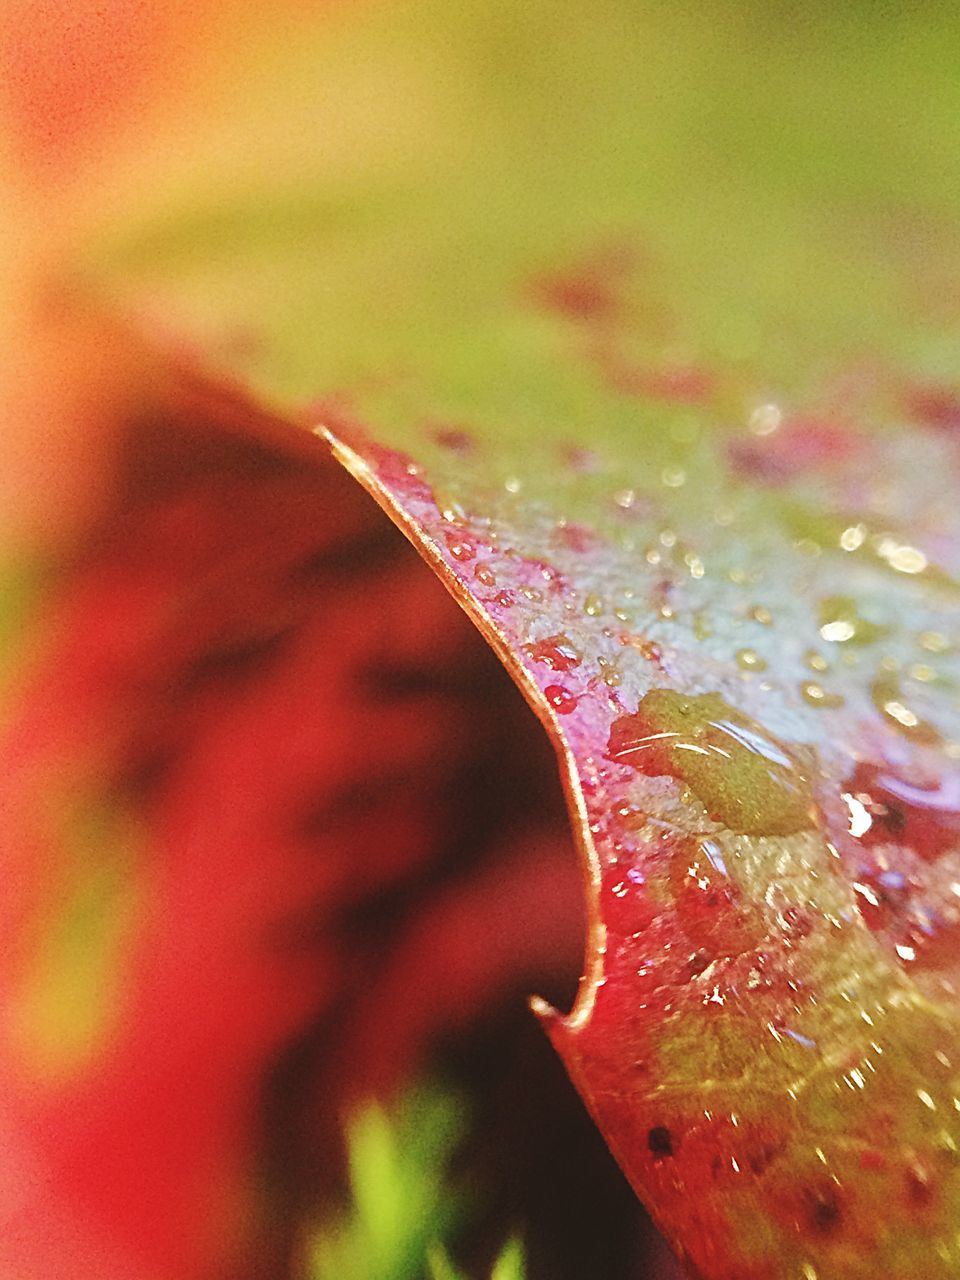 nature, close-up, water, growth, beauty in nature, freshness, plant, fragility, no people, leaf, outdoors, day, flower